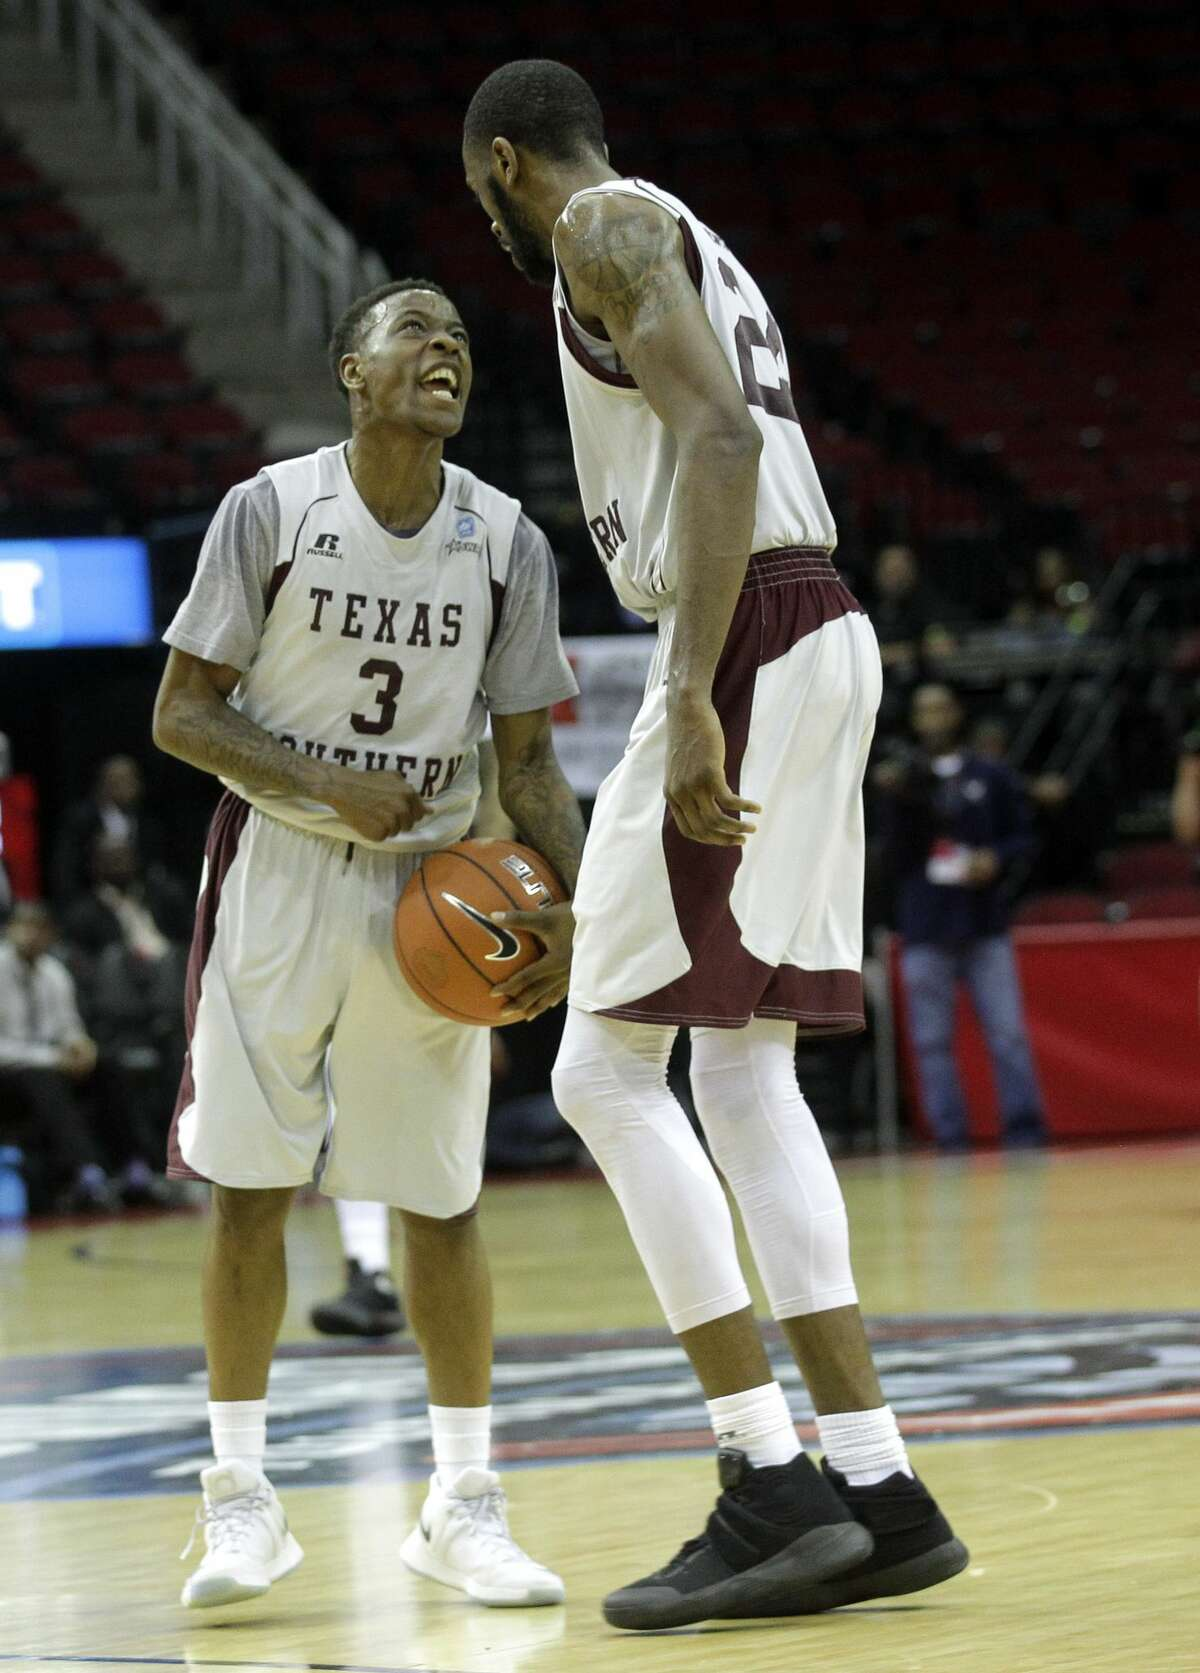 Texas Southern Tigers guard Demontrae Jefferson (3) and center Marvin Jones (24) celebrate the final minute of game action against Alcorn State on Saturday, March 11, 2017, in Houston. TSU won the game 53-50. ( Elizabeth Conley / Houston Chronicle )